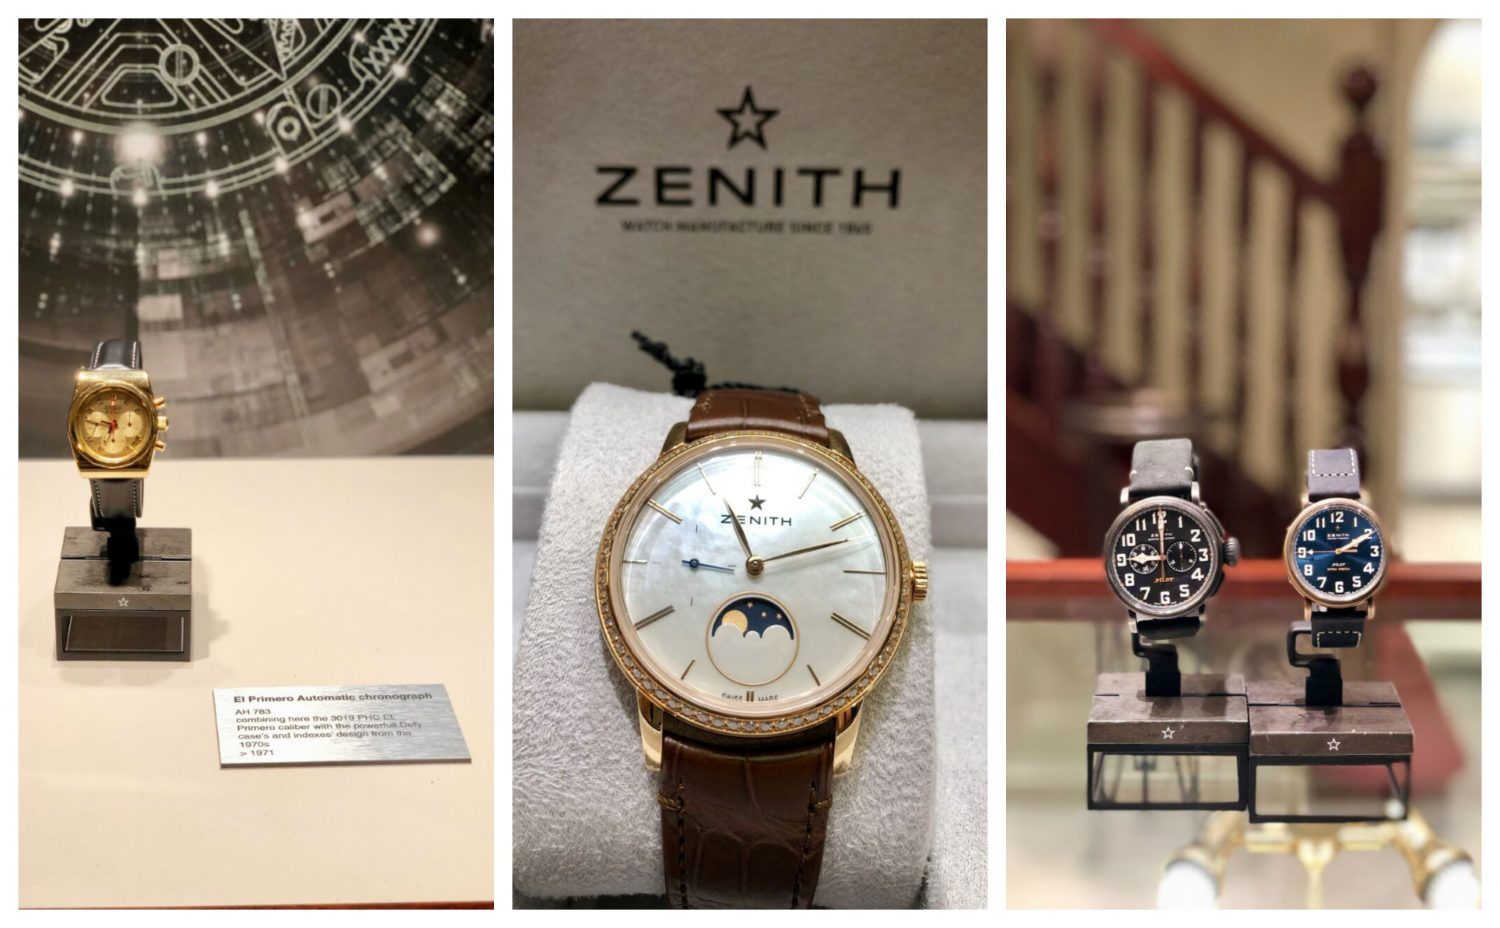 See the Zenith Watch Collection Exclusively at Weir and Sons